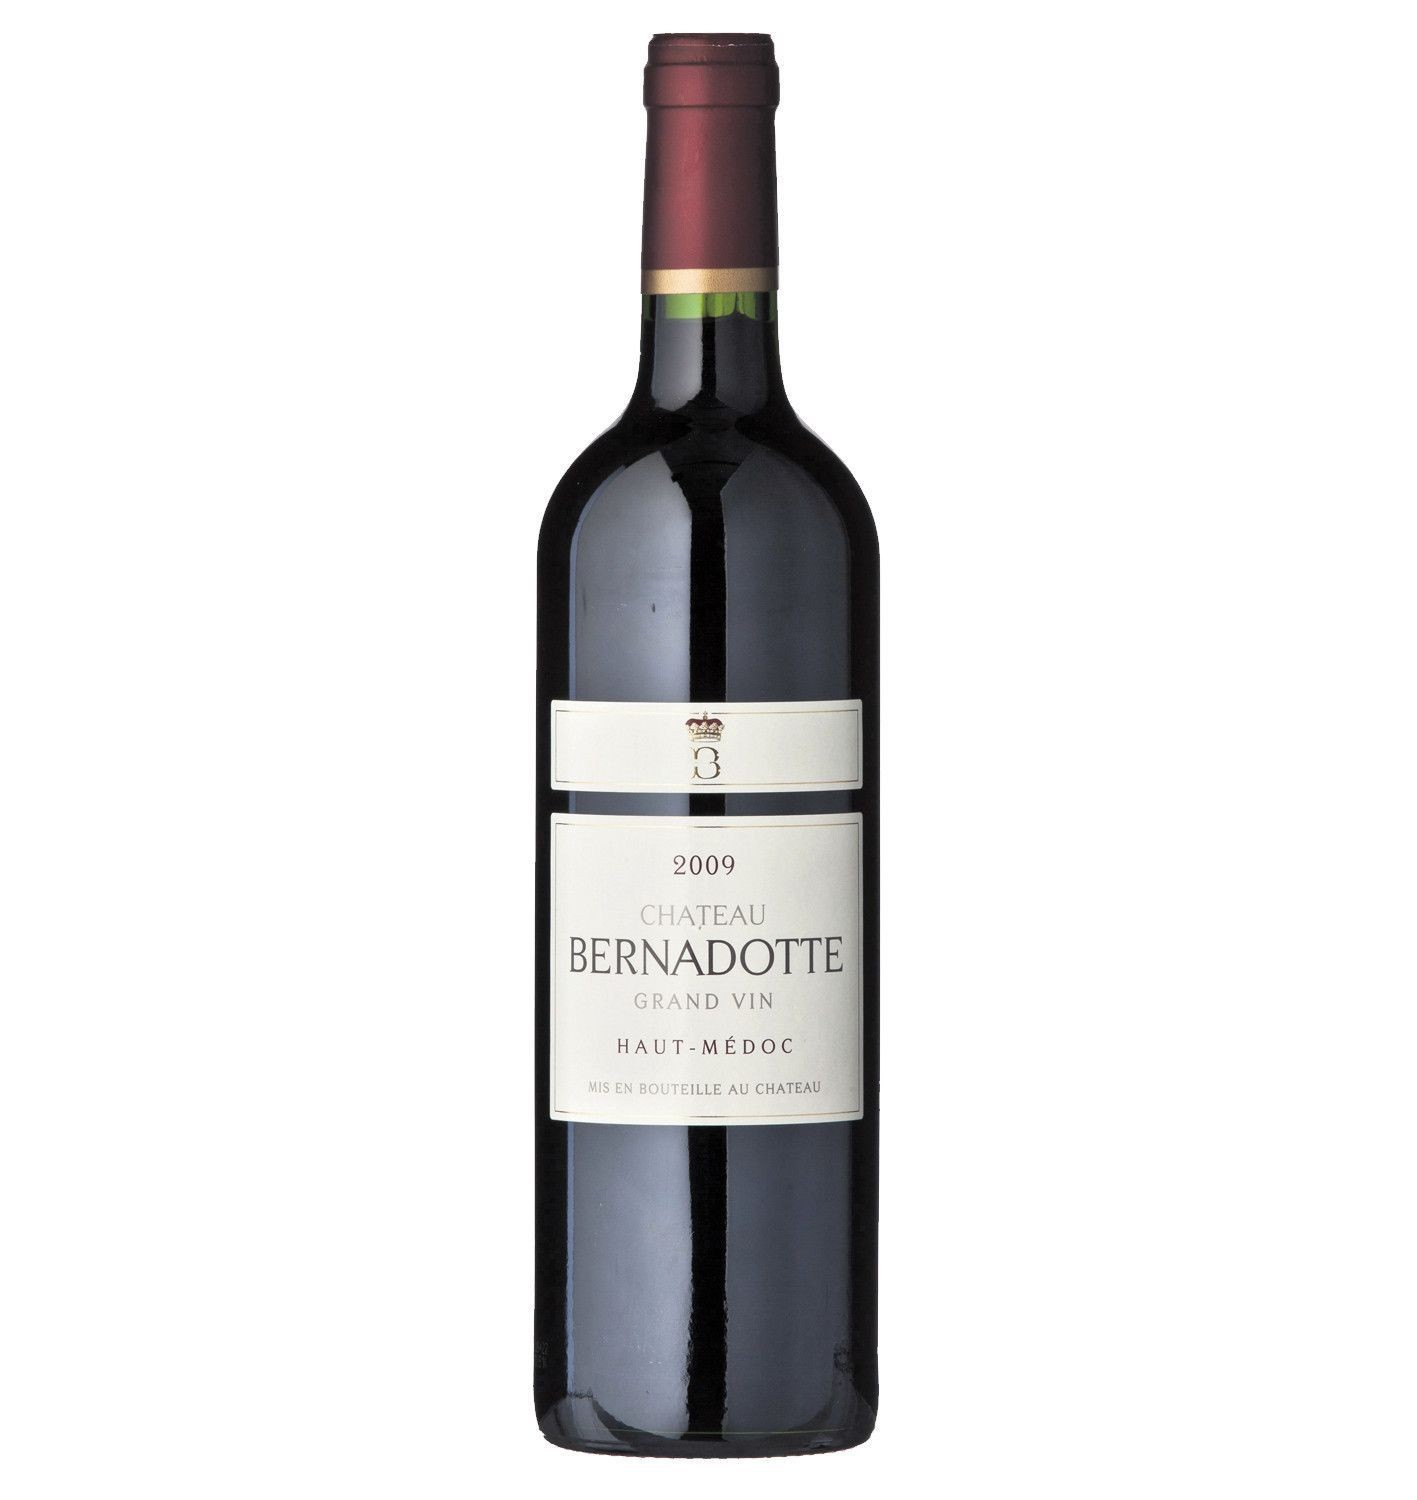 Buy Château Bernadotte Haut-Médoc 2010 at herculeswines.co.uk